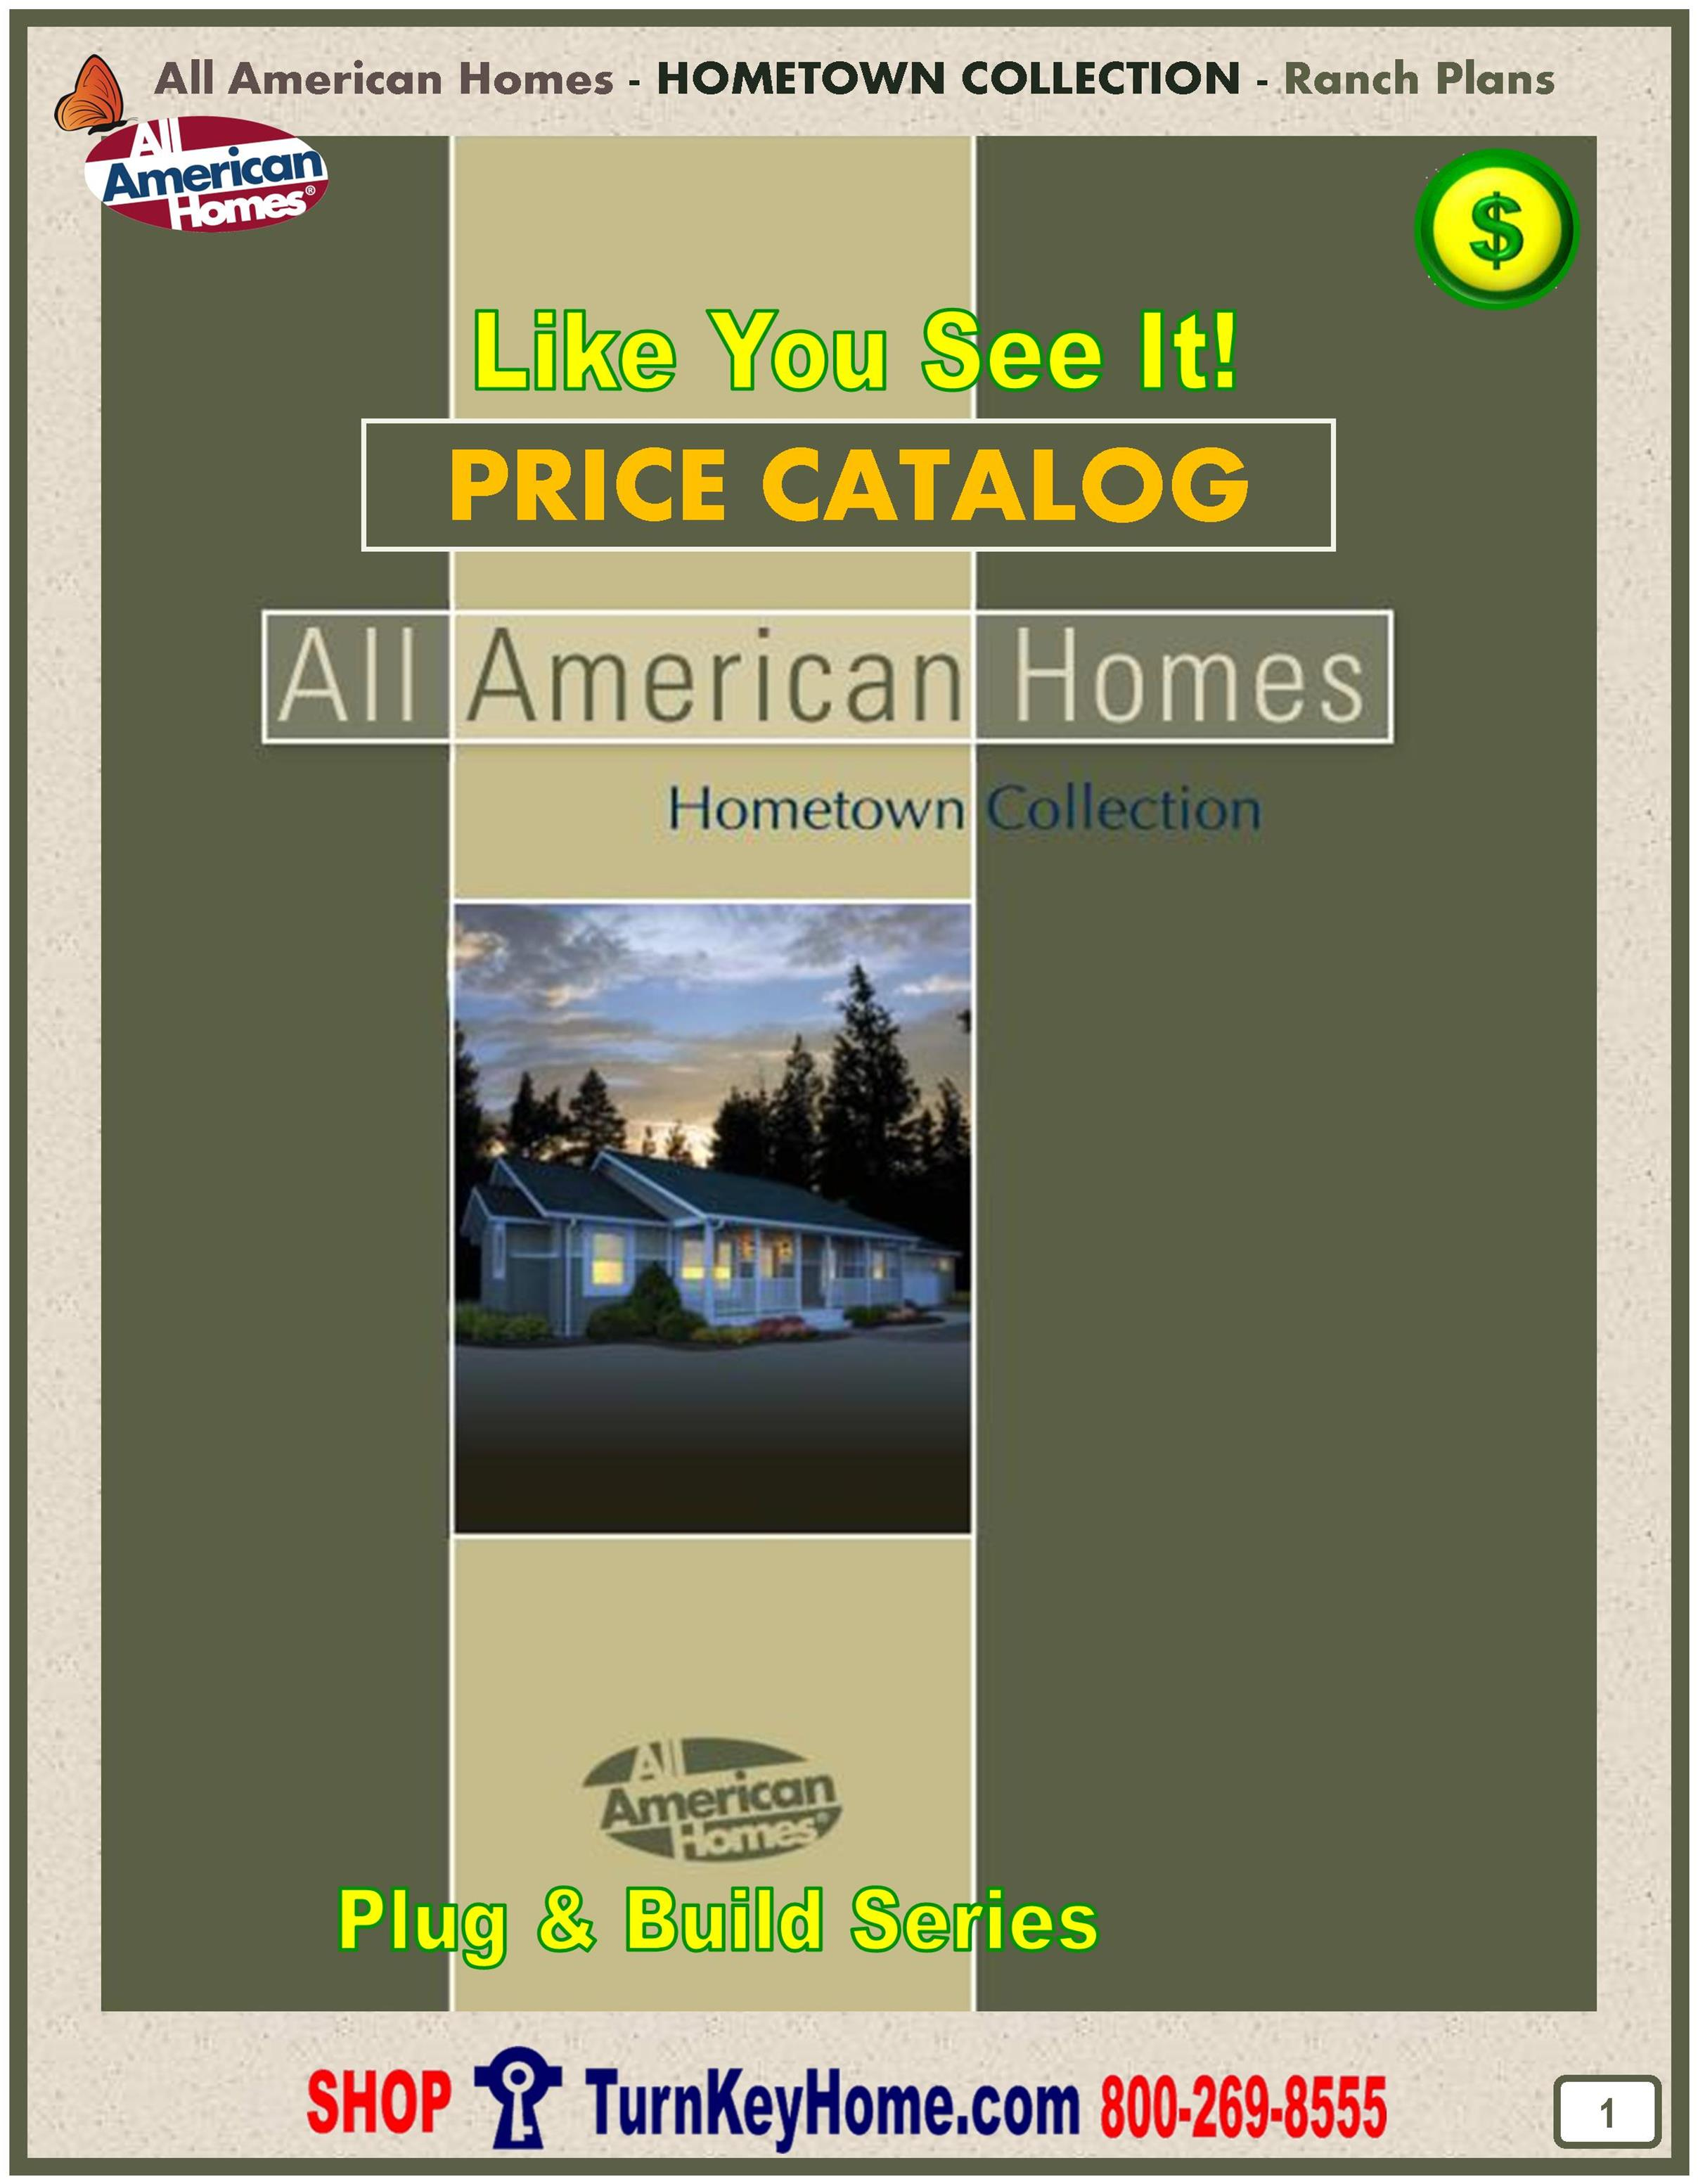 Modular.Home.All.American.Homes.Hometown.Collection.Plug.And.Build.Ranch.Catalotg.Plans.Price.P1.1215.c